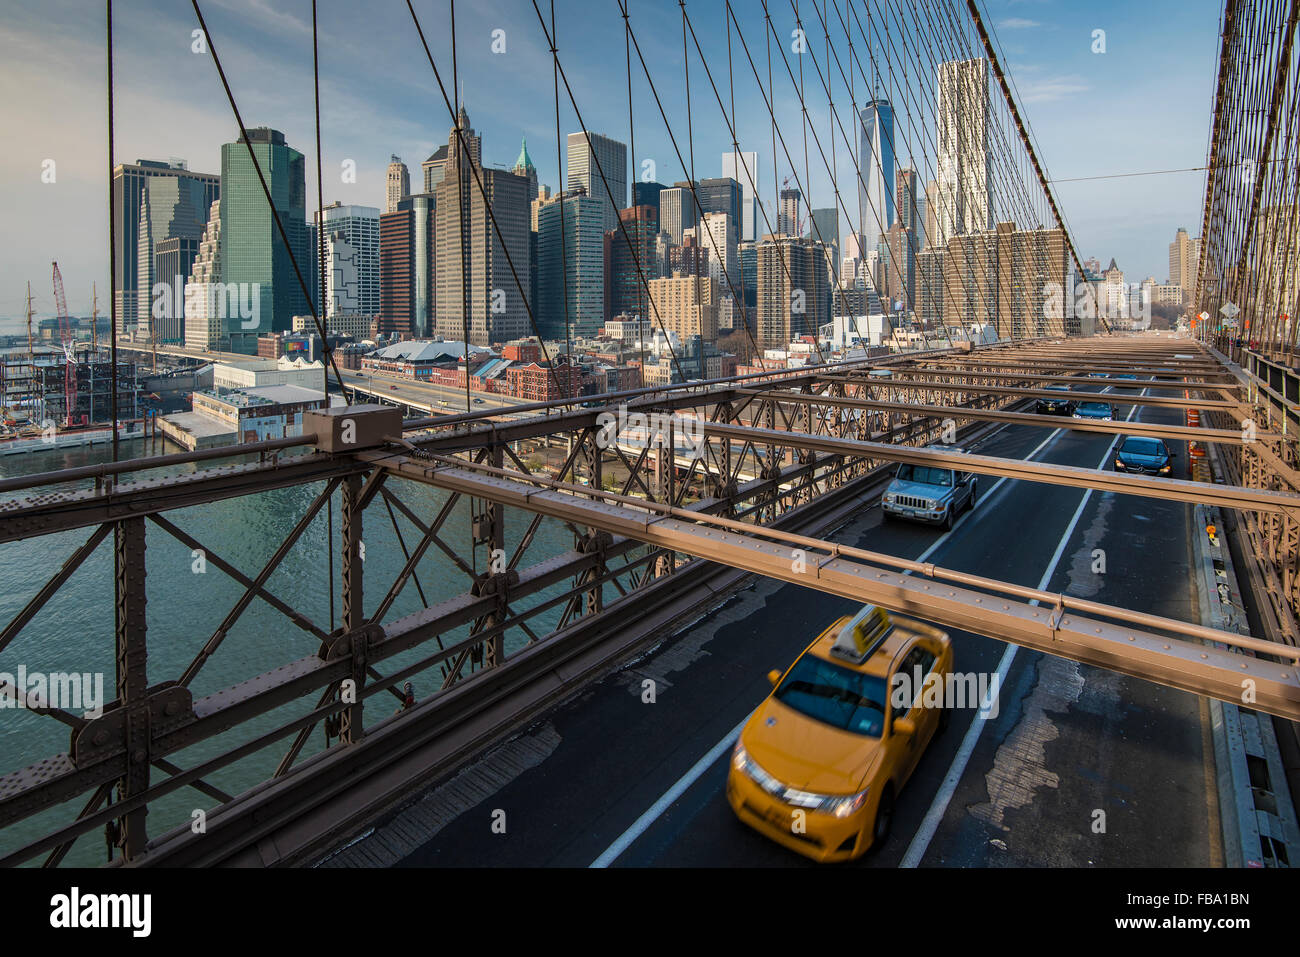 Avec le pont de Brooklyn, Manhattan skyline derrière, New York, USA Photo Stock